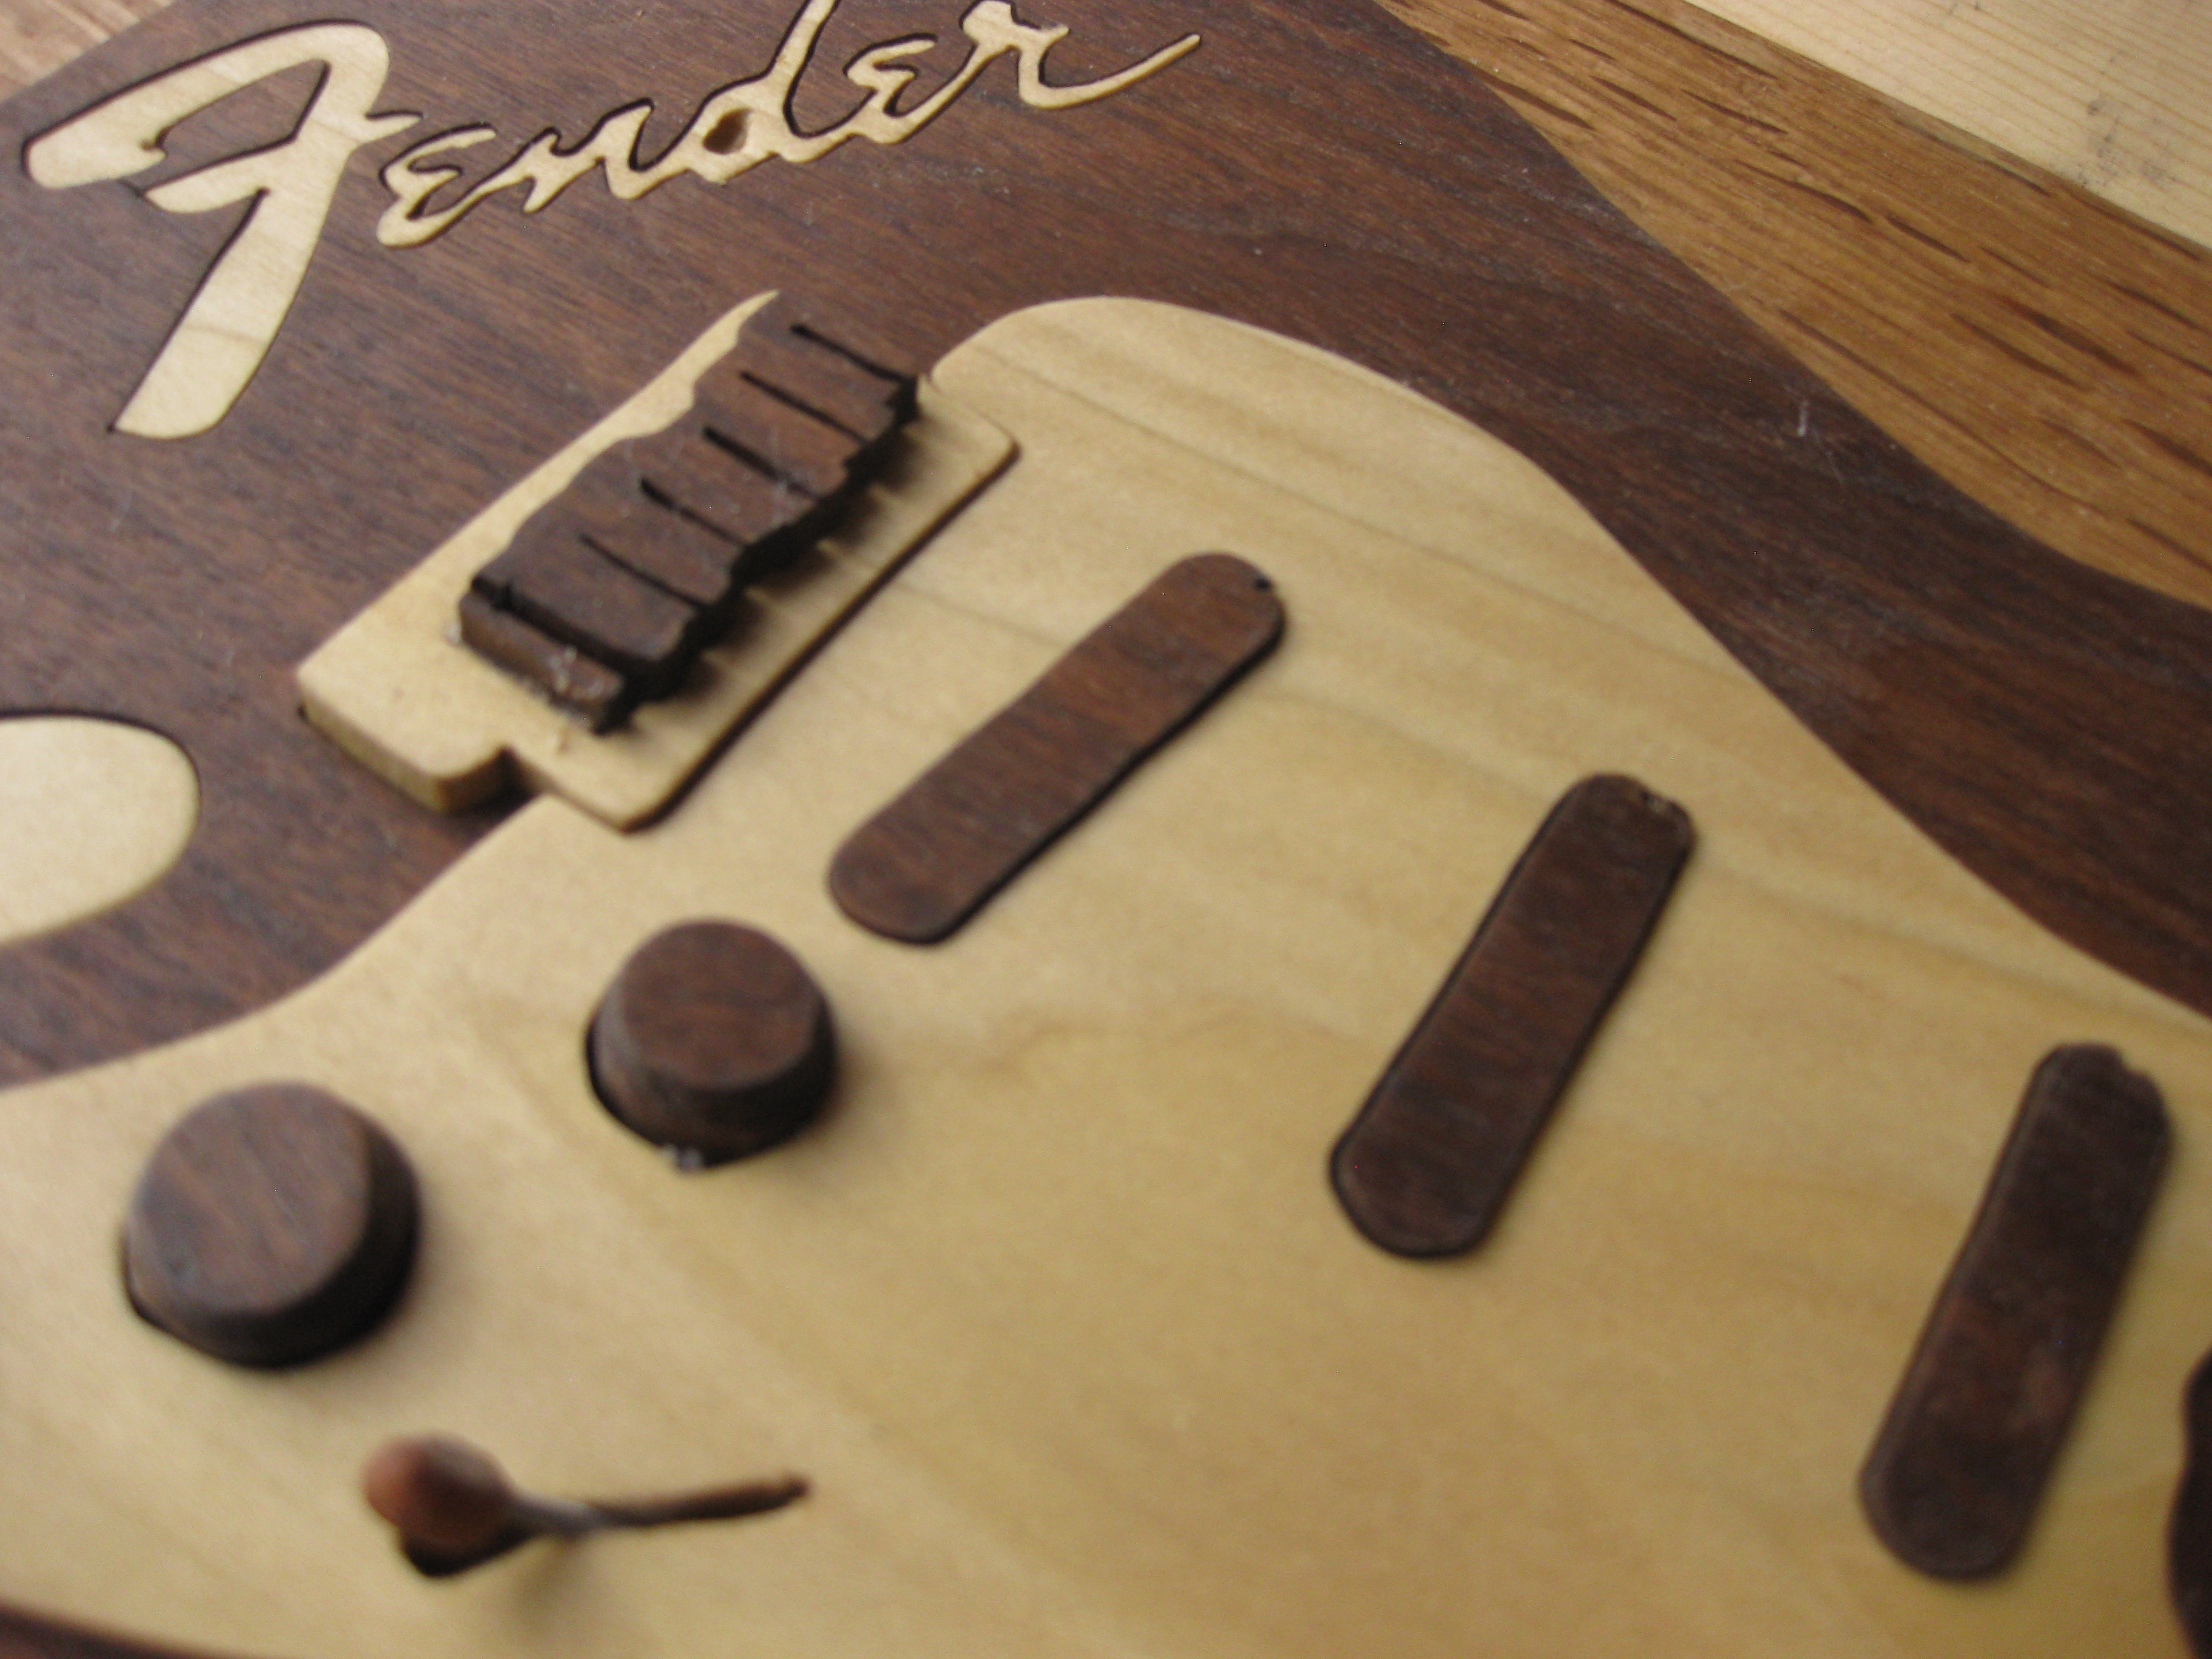 Close-up of Fender Guitar Art Puzzle